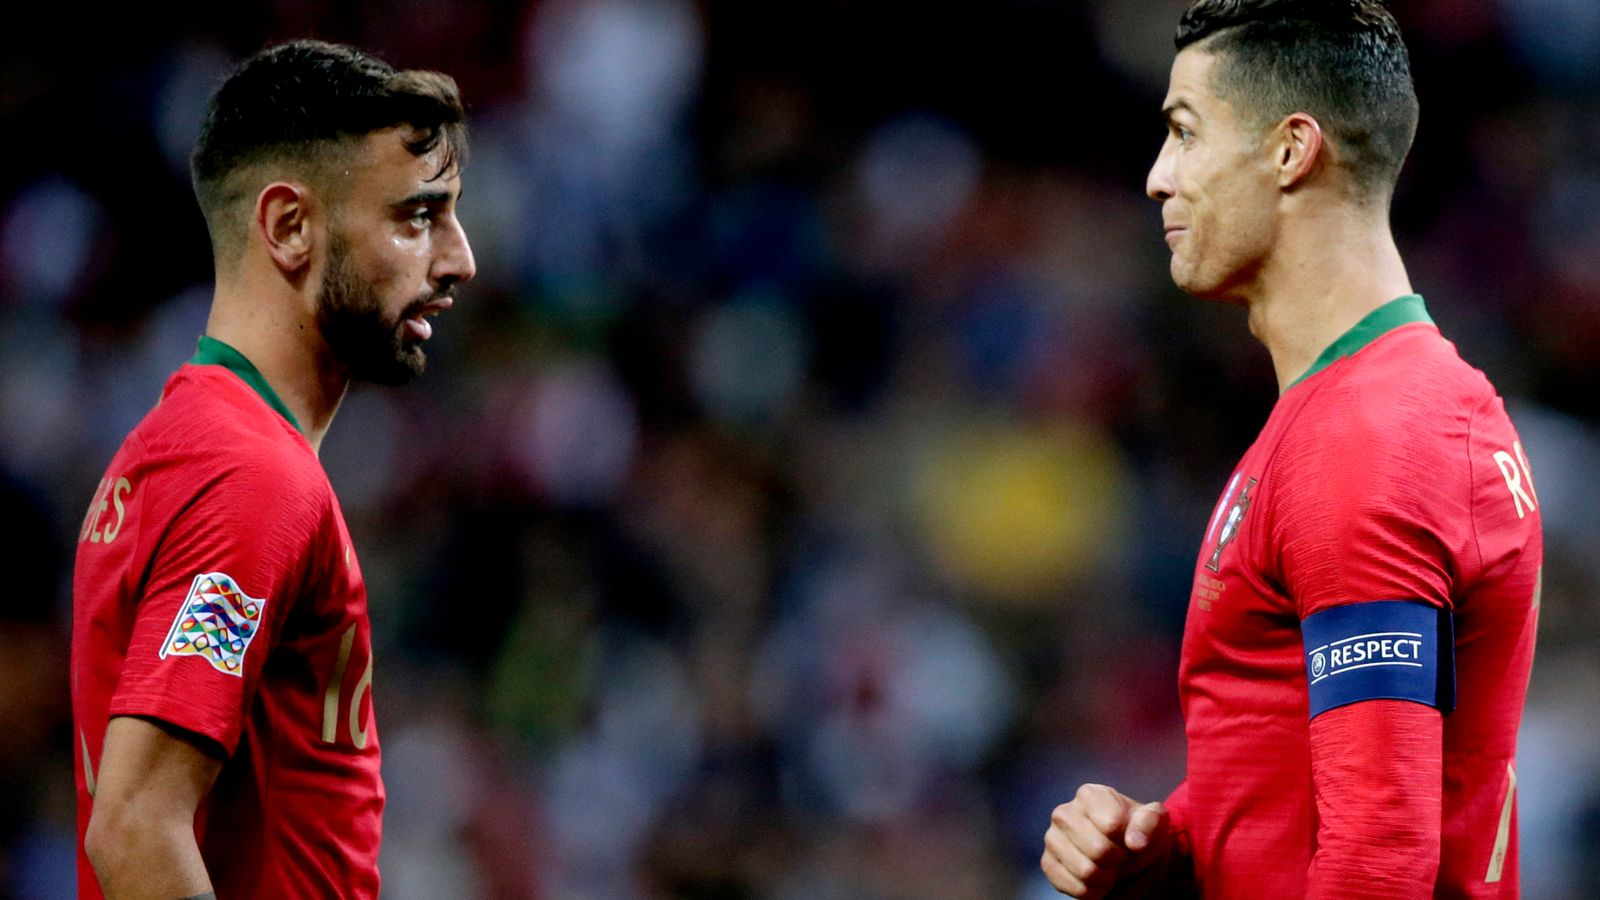 Bruno Fernandes: Cristiano Ronaldo inspired me to play for Manchester United